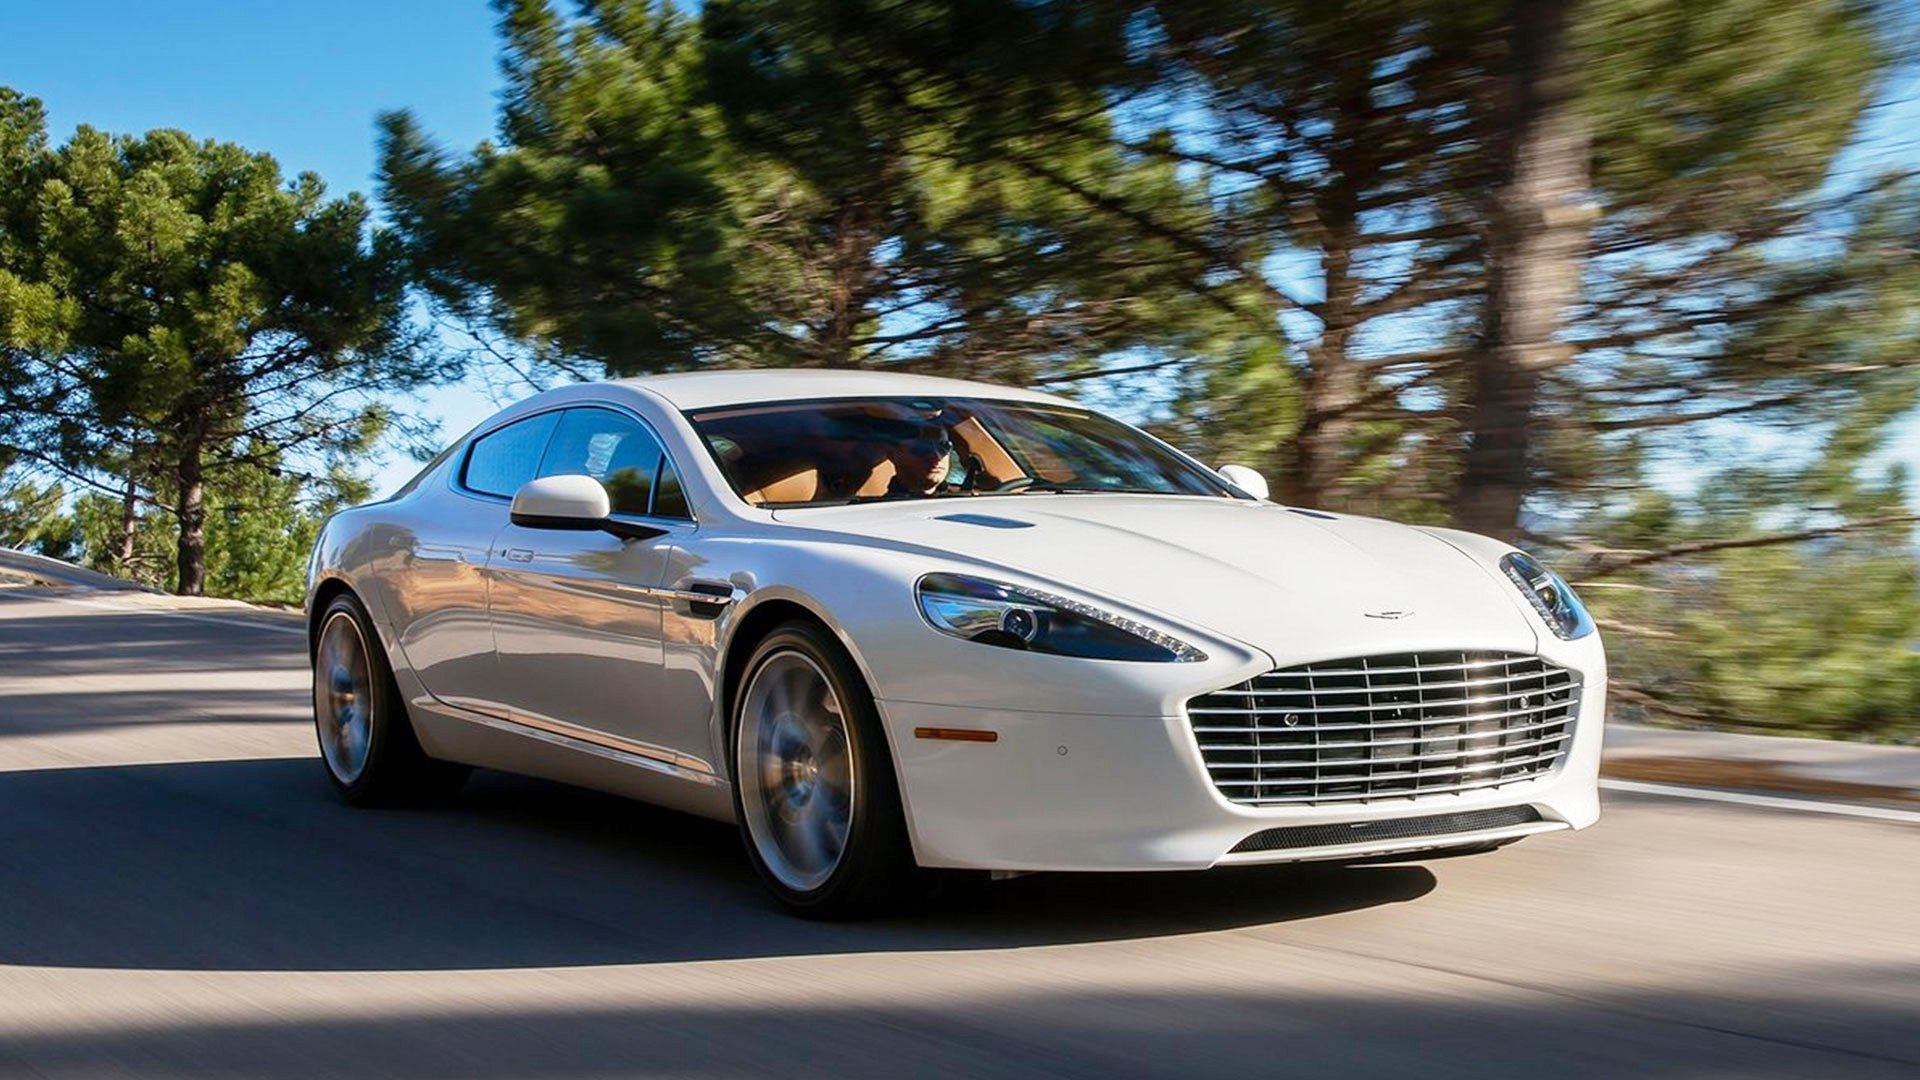 2014 aston martin rapide s hooligan topismag com. Black Bedroom Furniture Sets. Home Design Ideas